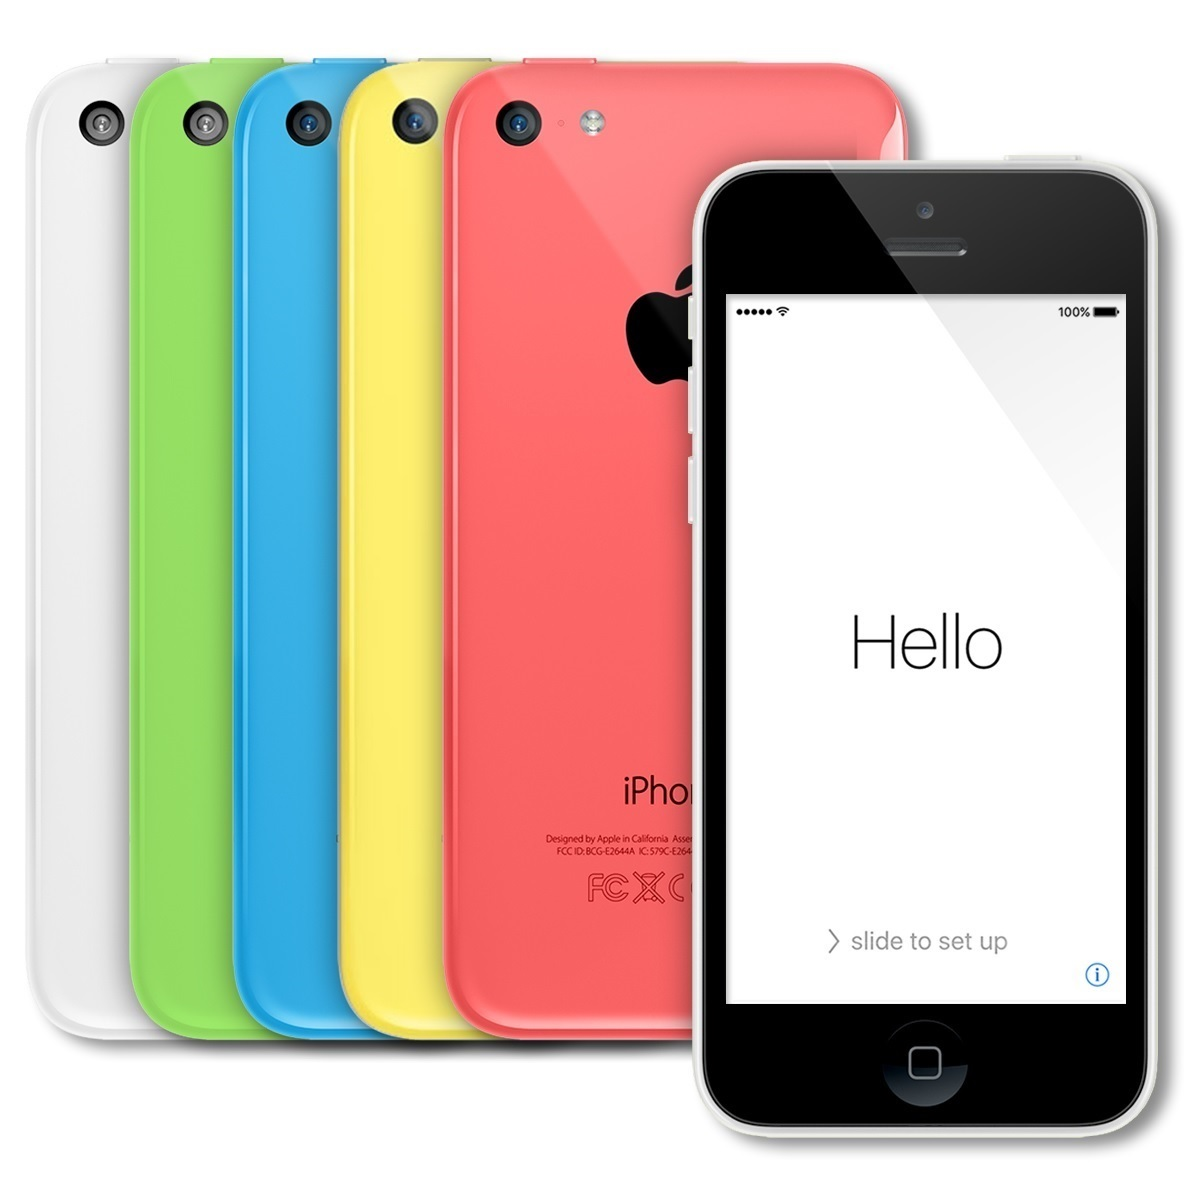 Released in on Boost Mobile network, the Apple iPhone 5C can be yours a low price with no contract from third party retailers. Buying Apple iPhones released in from third-party vendors is a good alternative when you need a unique iPhone 5C with no contract at a cheaper price.